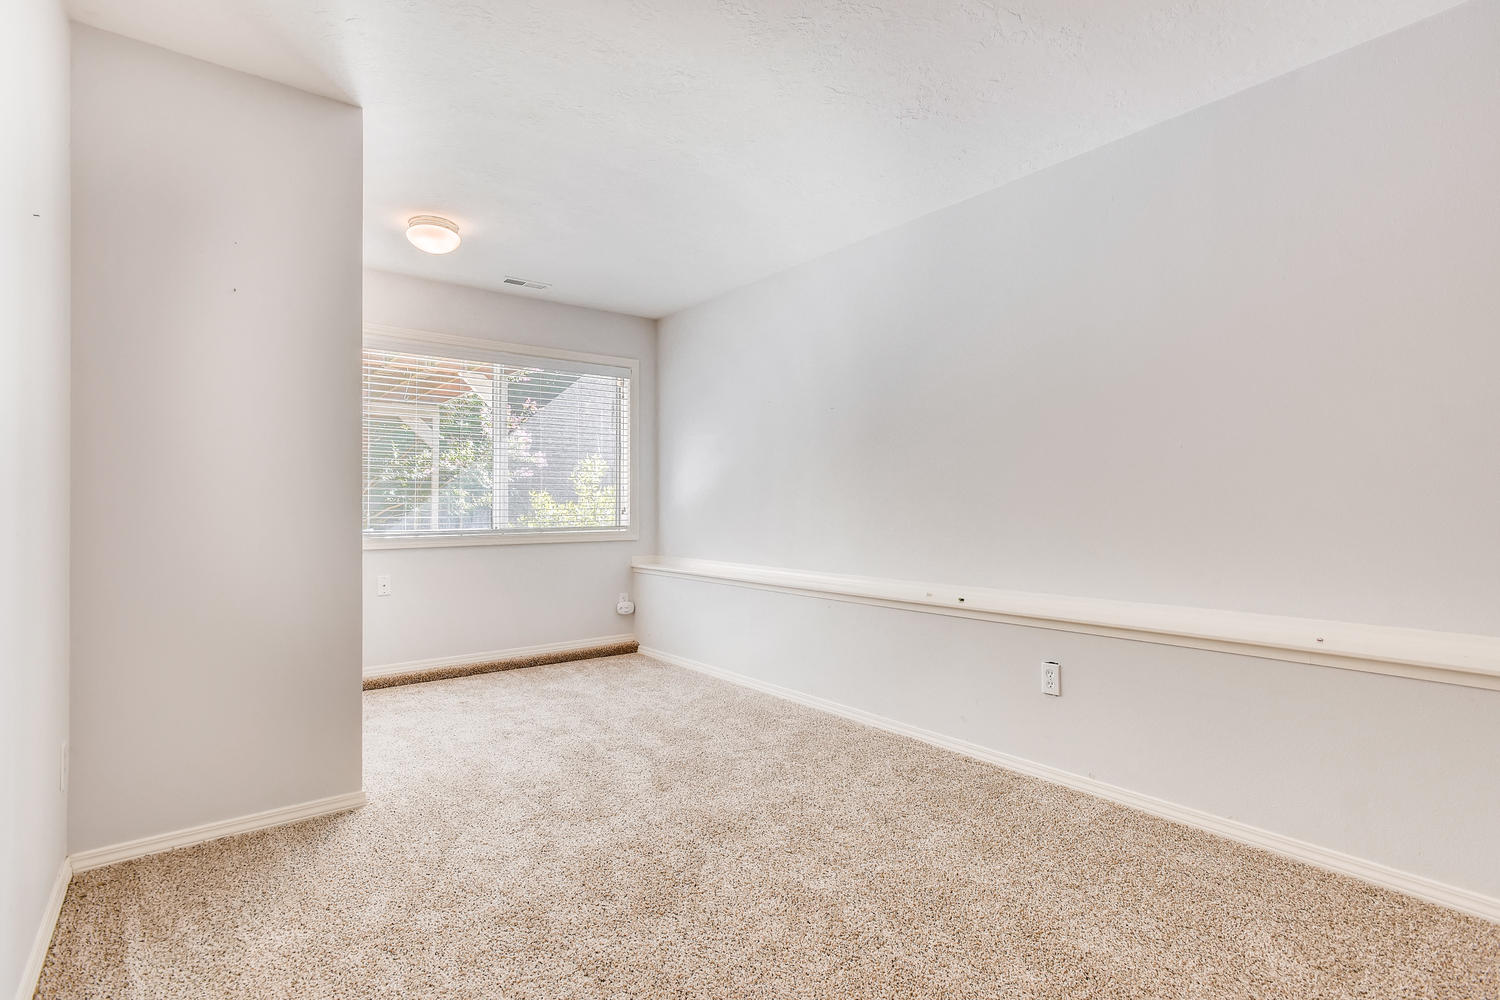 Photo of 3002 Hunter Ct, West Linn, OR, 97068